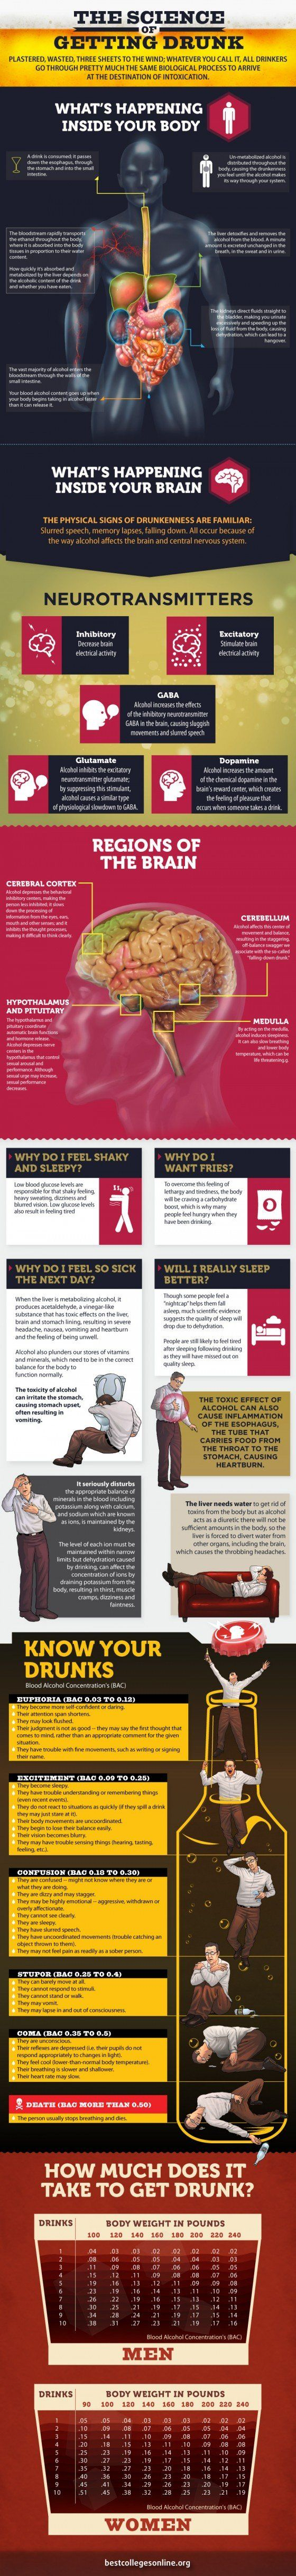 The Science of Getting Drunk - What happens to your body when you get drunk